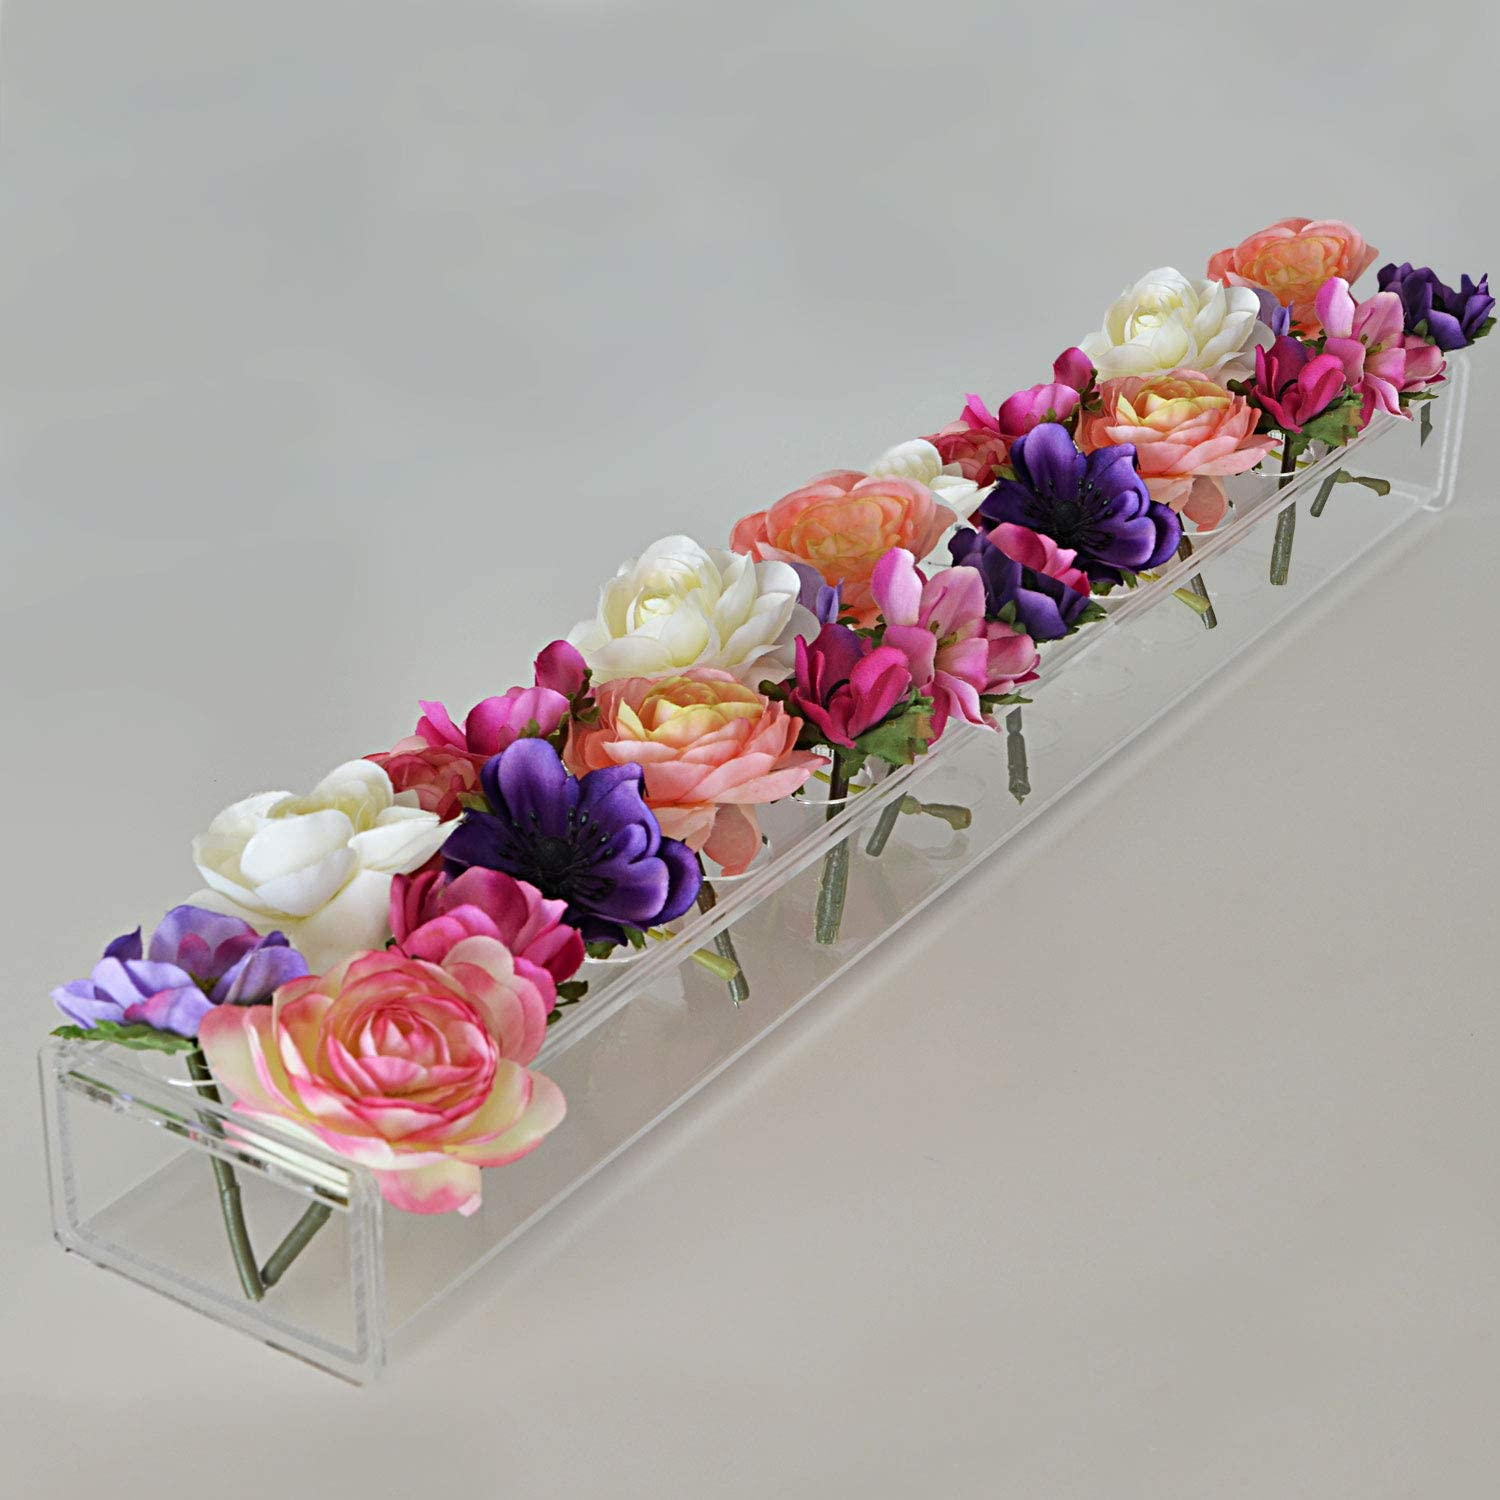 Amazon Com Rectangular Floral Centerpiece For Dining Table 24 Inches Long Rectangle Vase Acrylic Modern Vase Low Laying Unique Flower Vases For Home Decor Or Weddings Led Clear Kitchen Dining